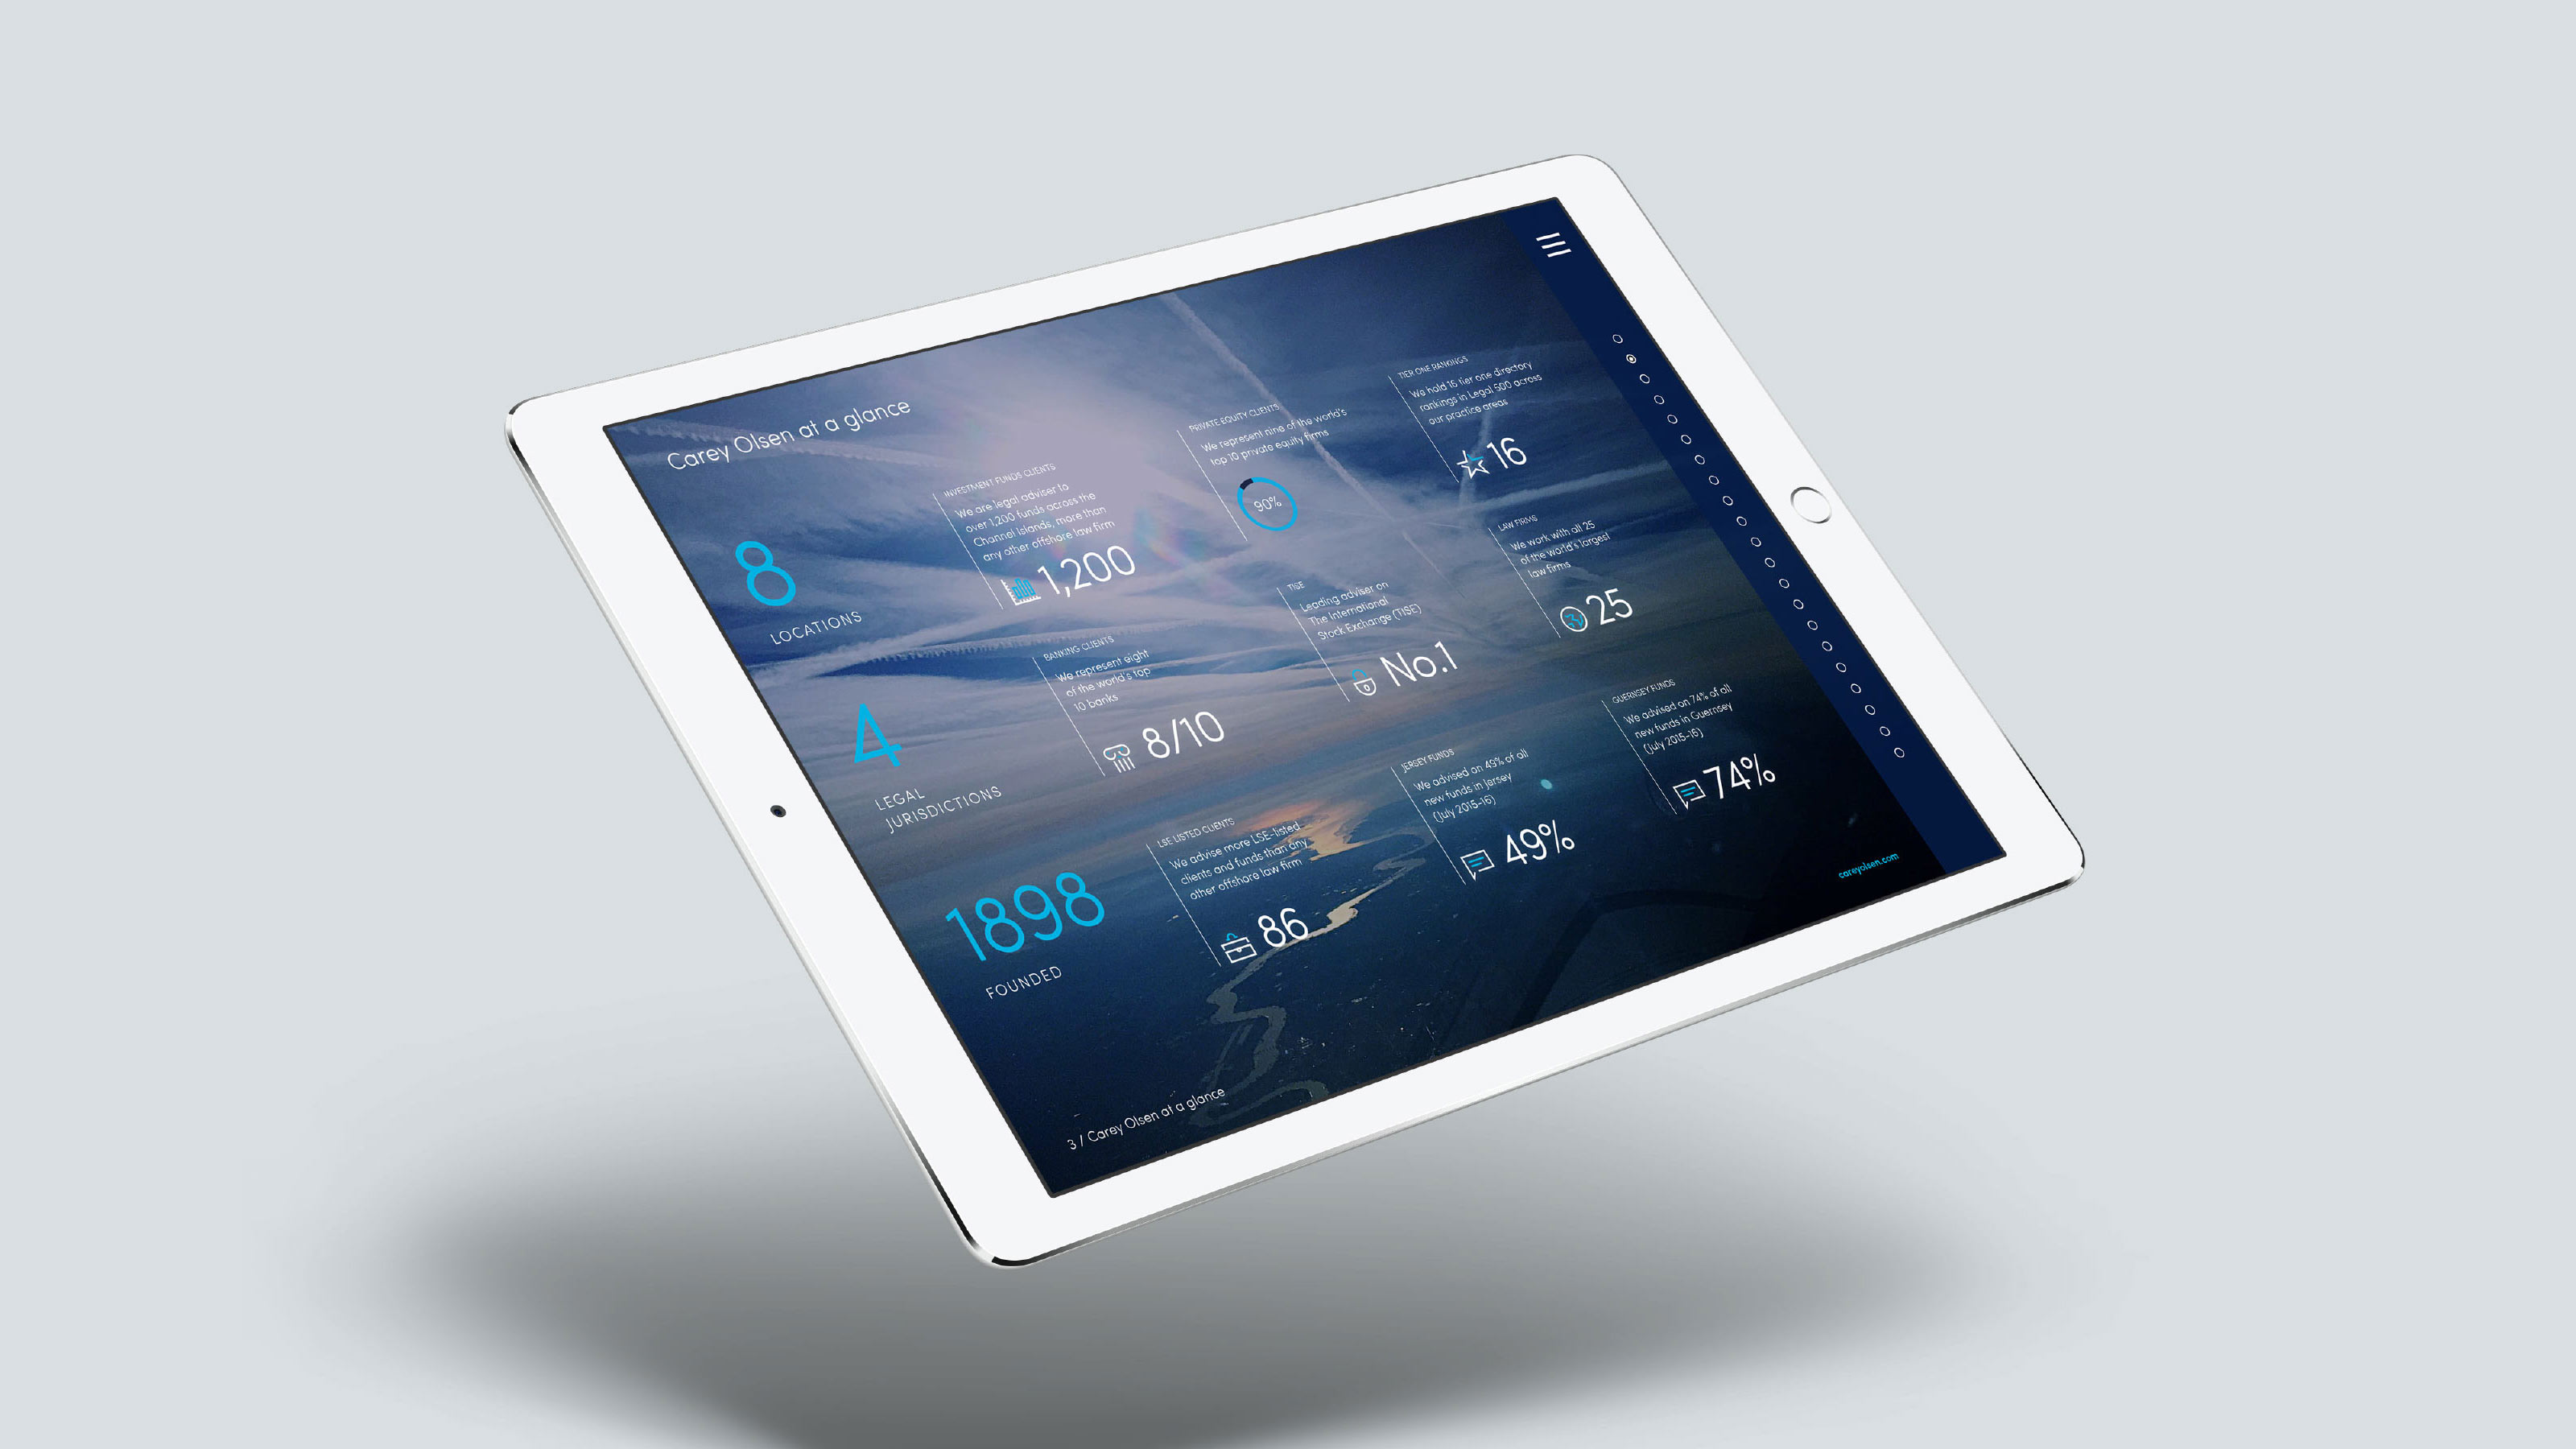 Marketing tablet screen Carey